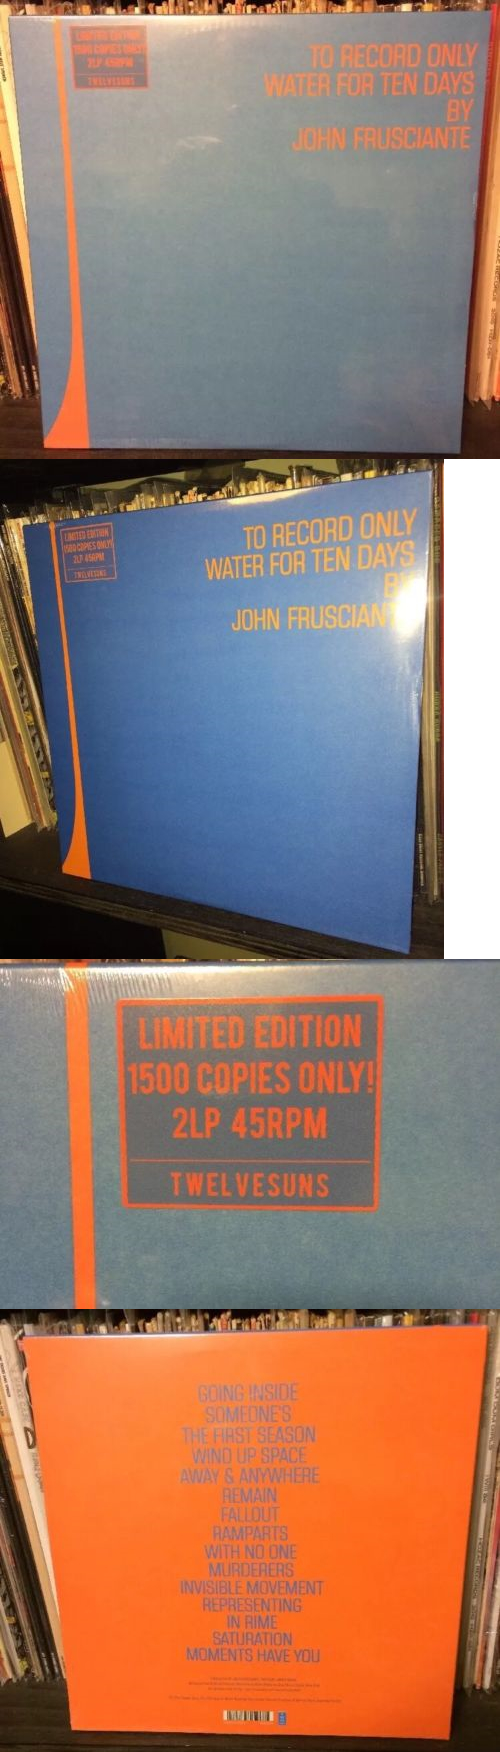 Music Albums John Frusciante To Record Only Water For Ten Days 2x Vinyl Lp 45rpm Buy It Now Only 119 99 Ohr